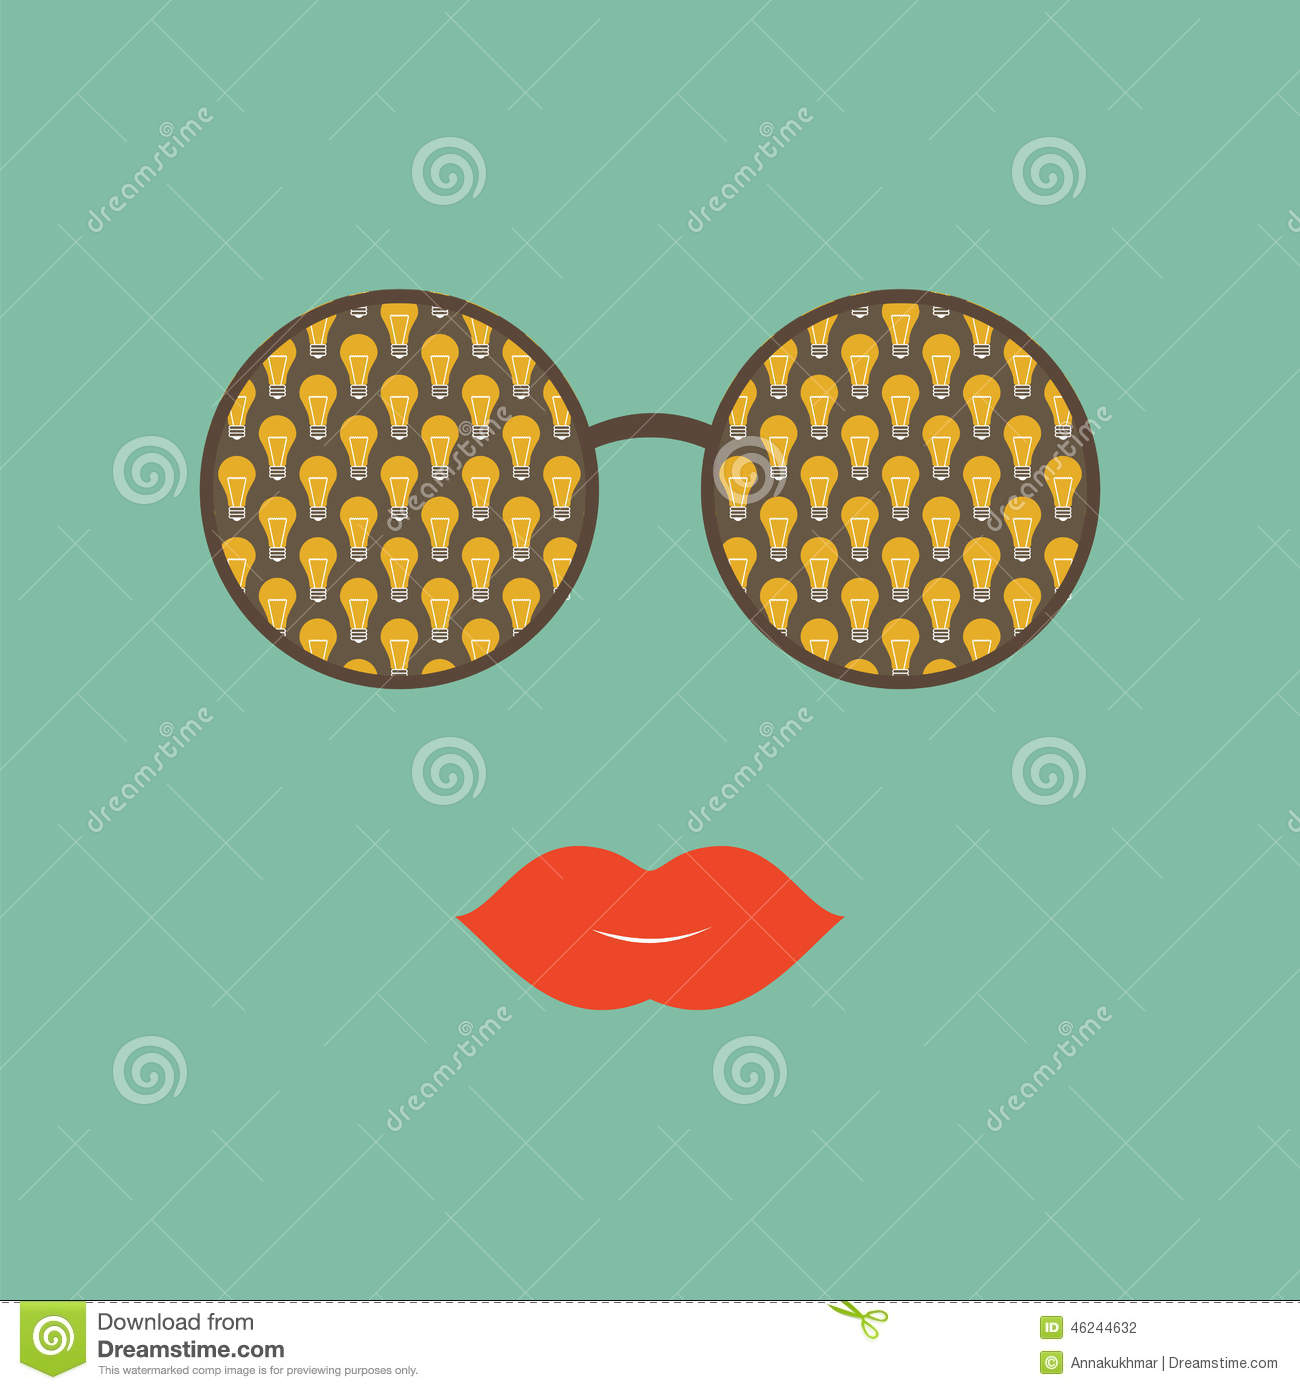 23291f7d280 Sunglasses With Reflection Of Light Bulb And Red Lips Stock Vector ...